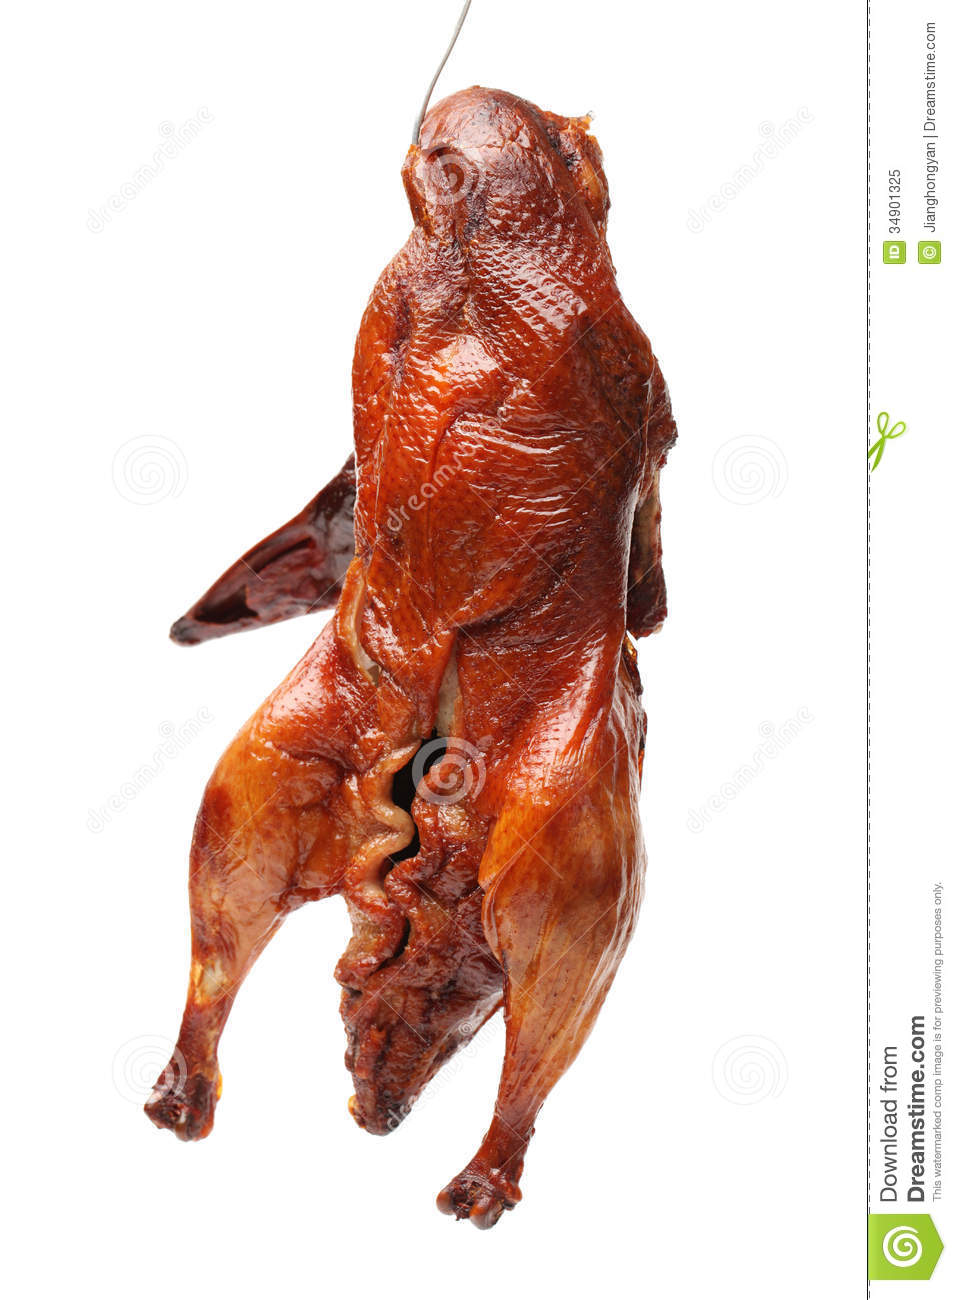 Roast Duck Royalty Free Stock Photo Image 34901325